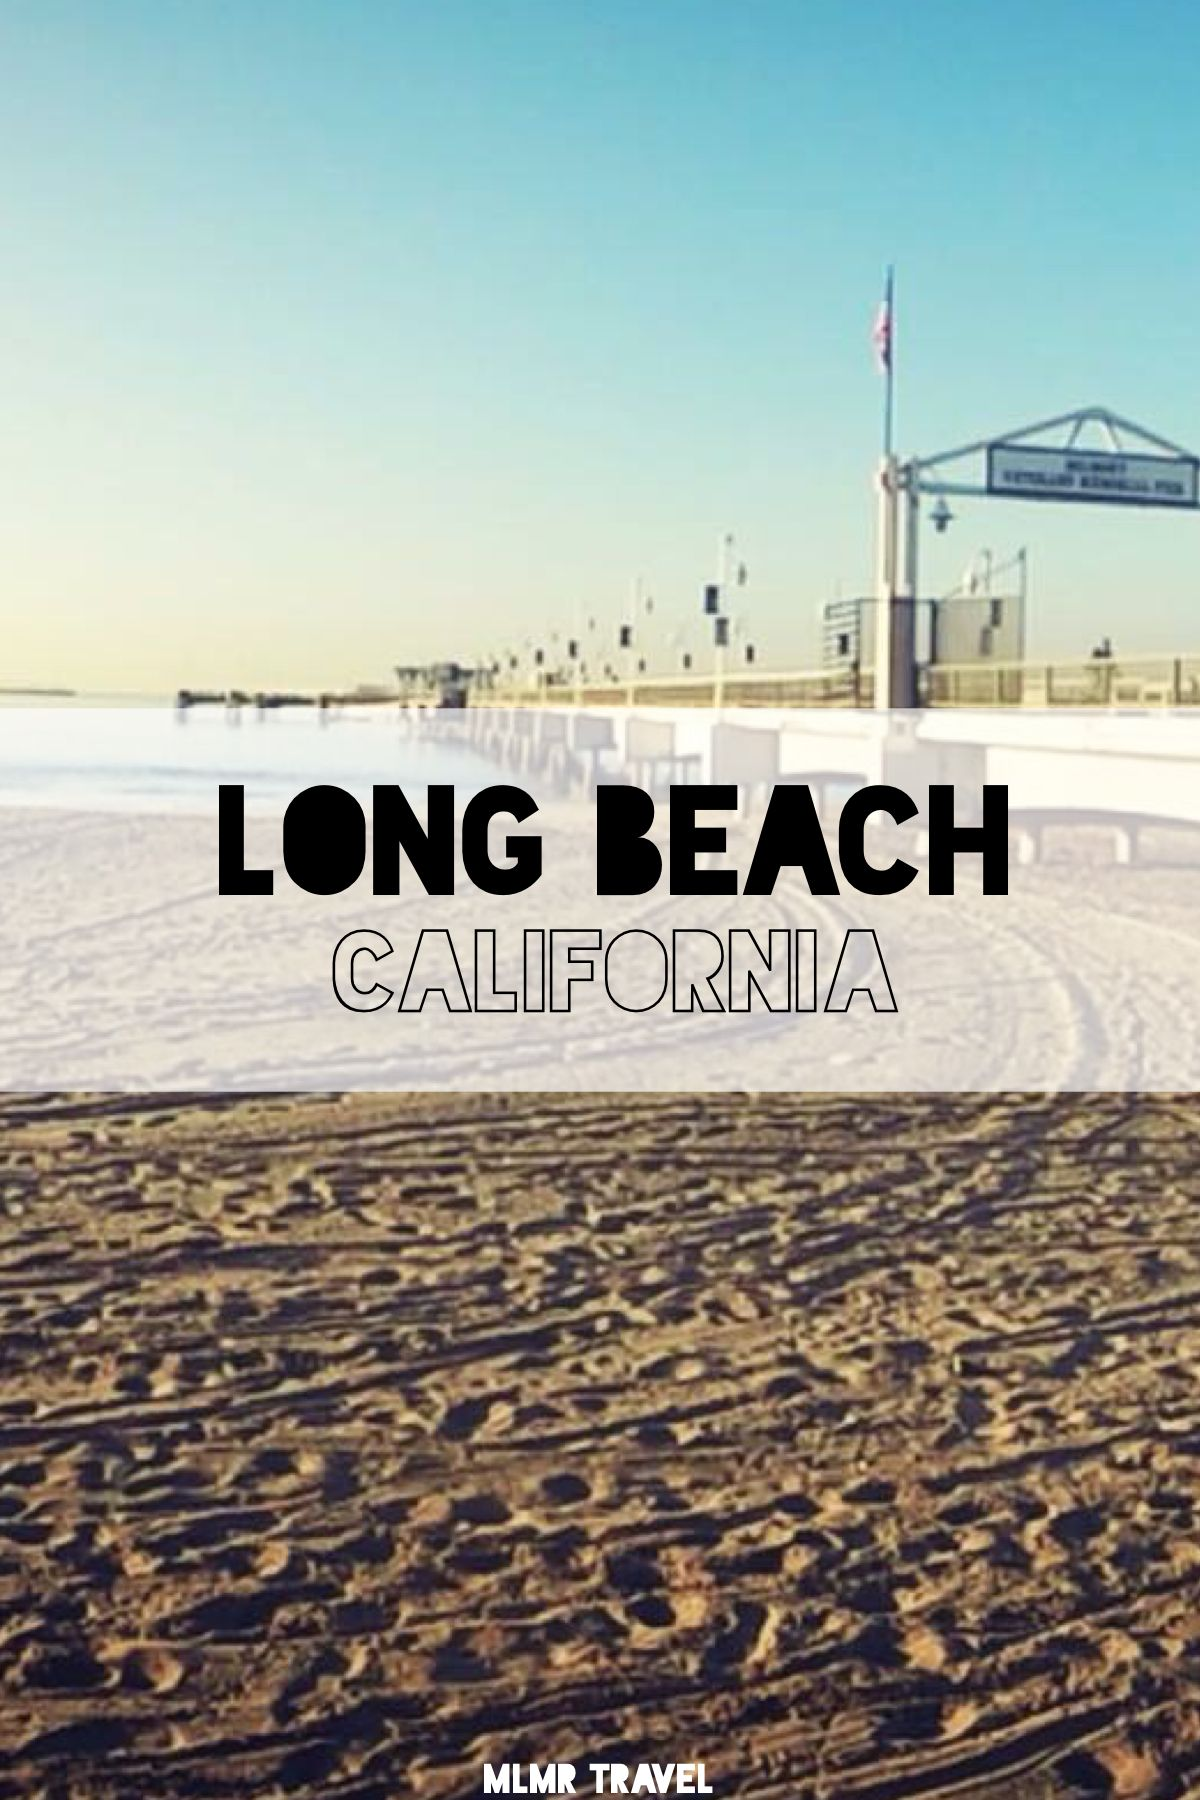 How to spend a quick day in long beach california mlmr